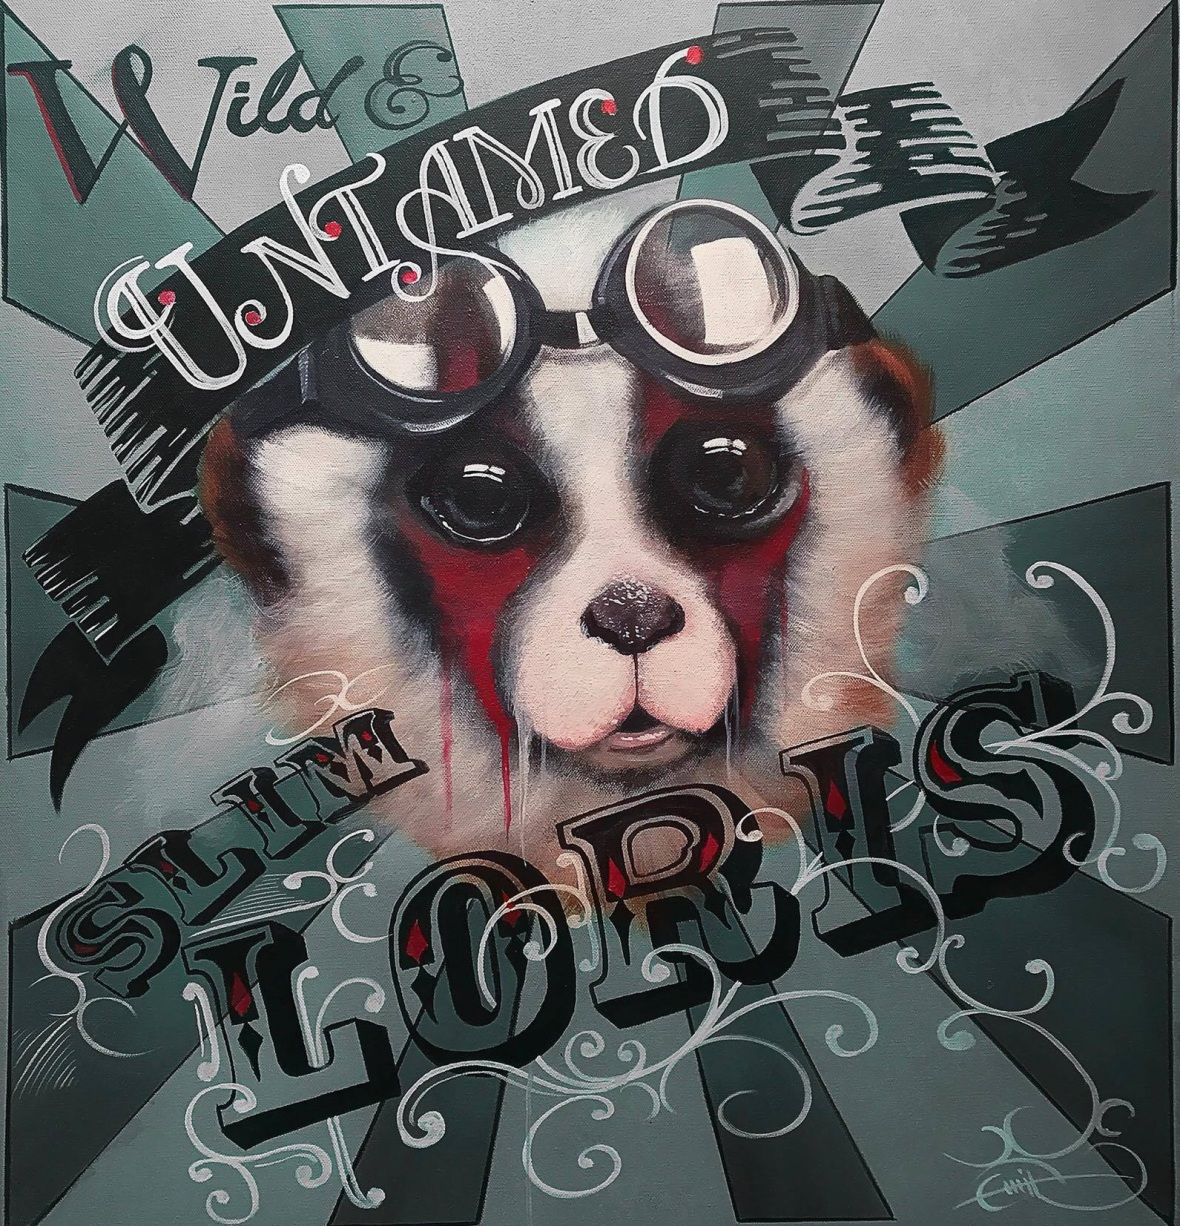 Cover art for Wild & Untamed, the forthcoming EP by Swedish band Slim Loris